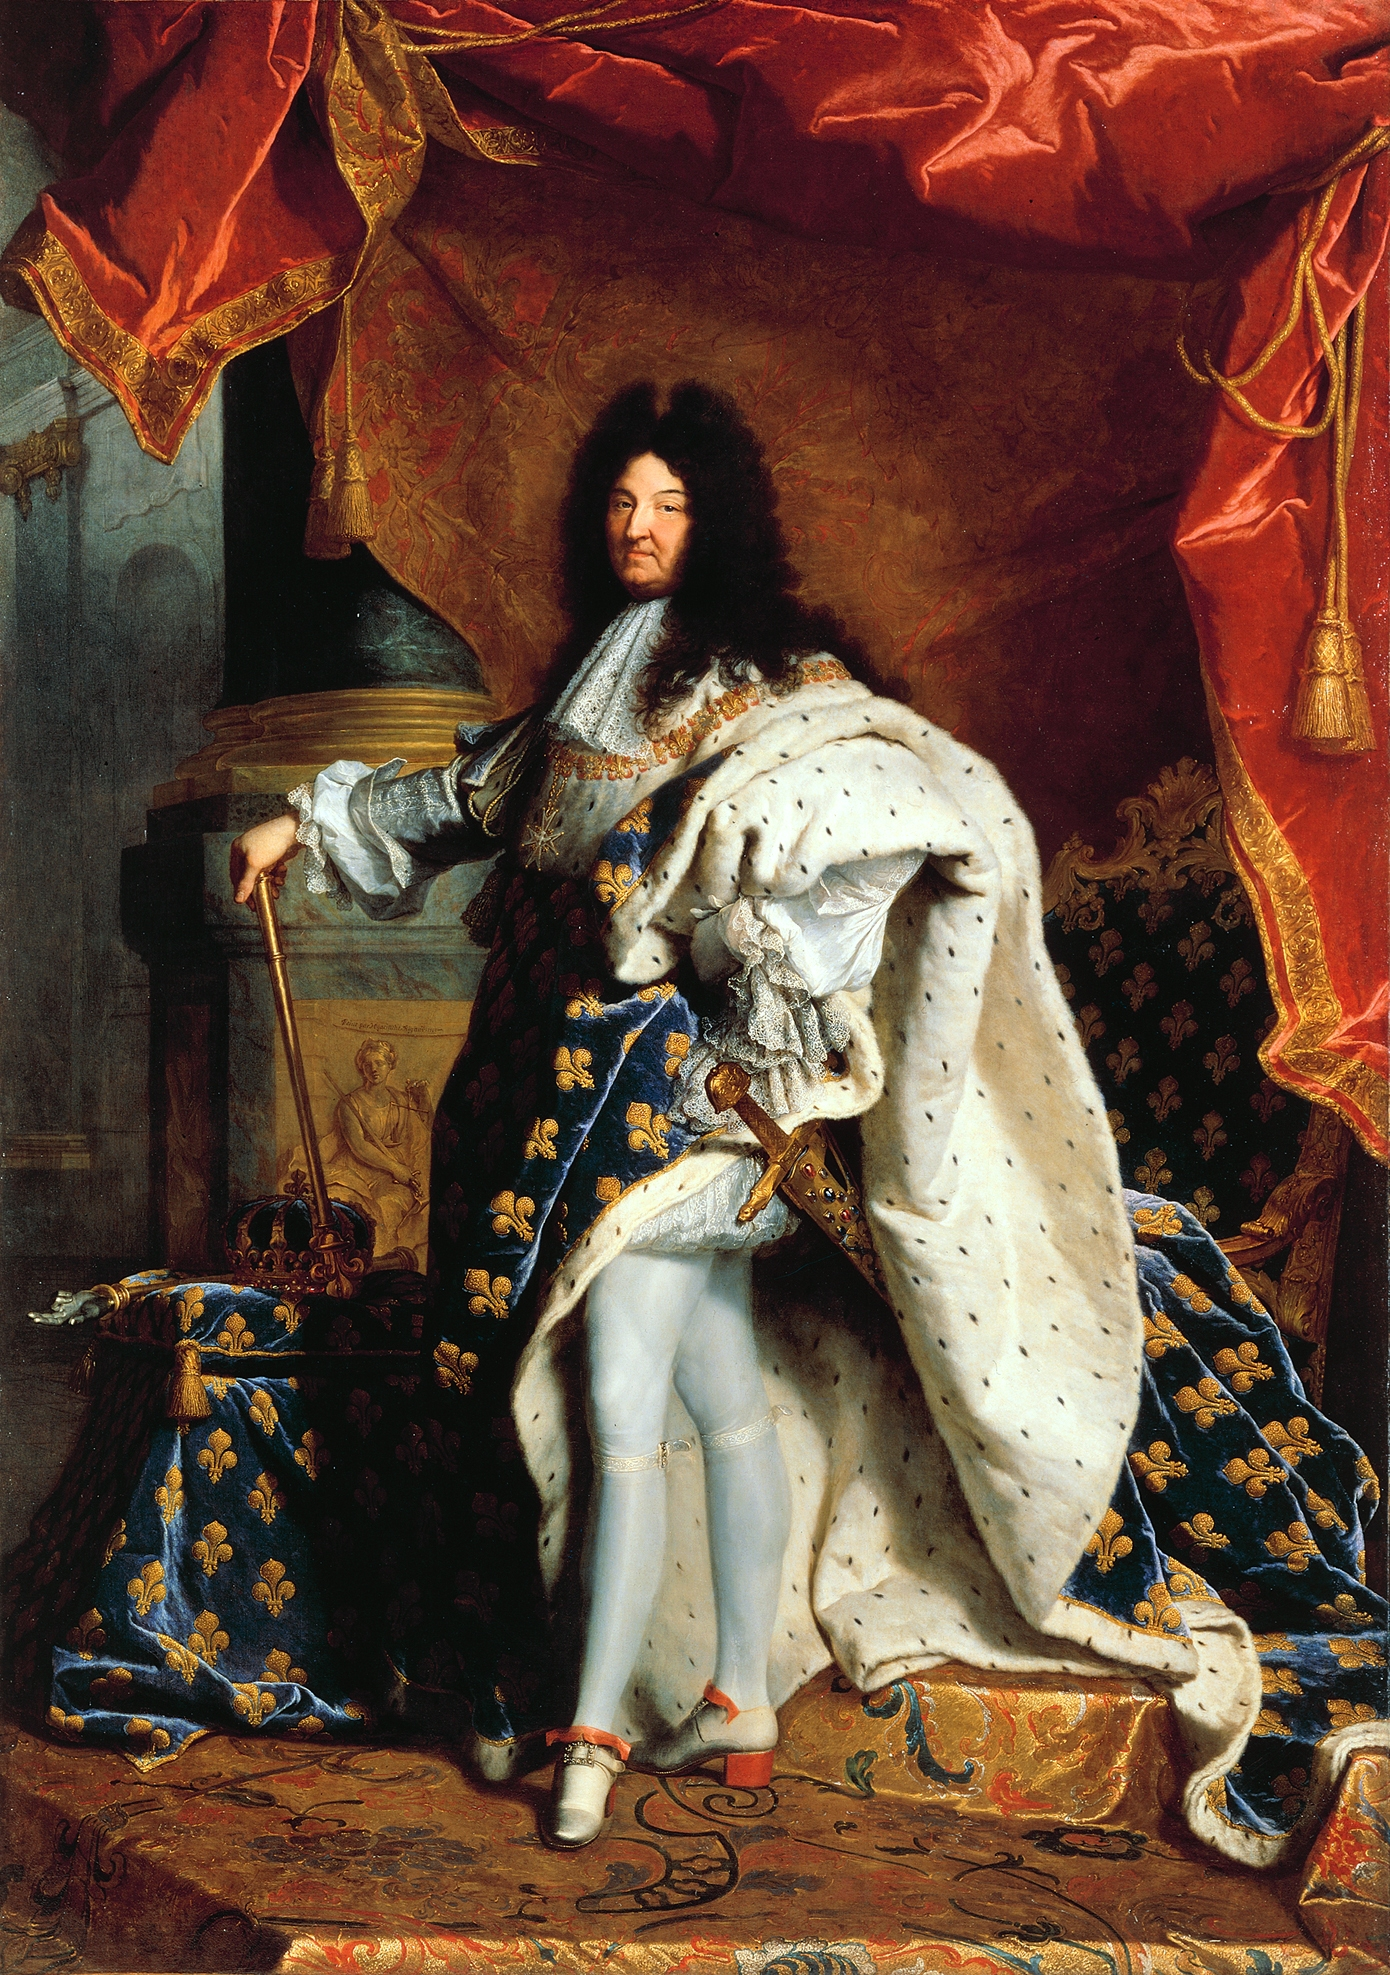 Louis XIV reminds the viewer of his ballet past.